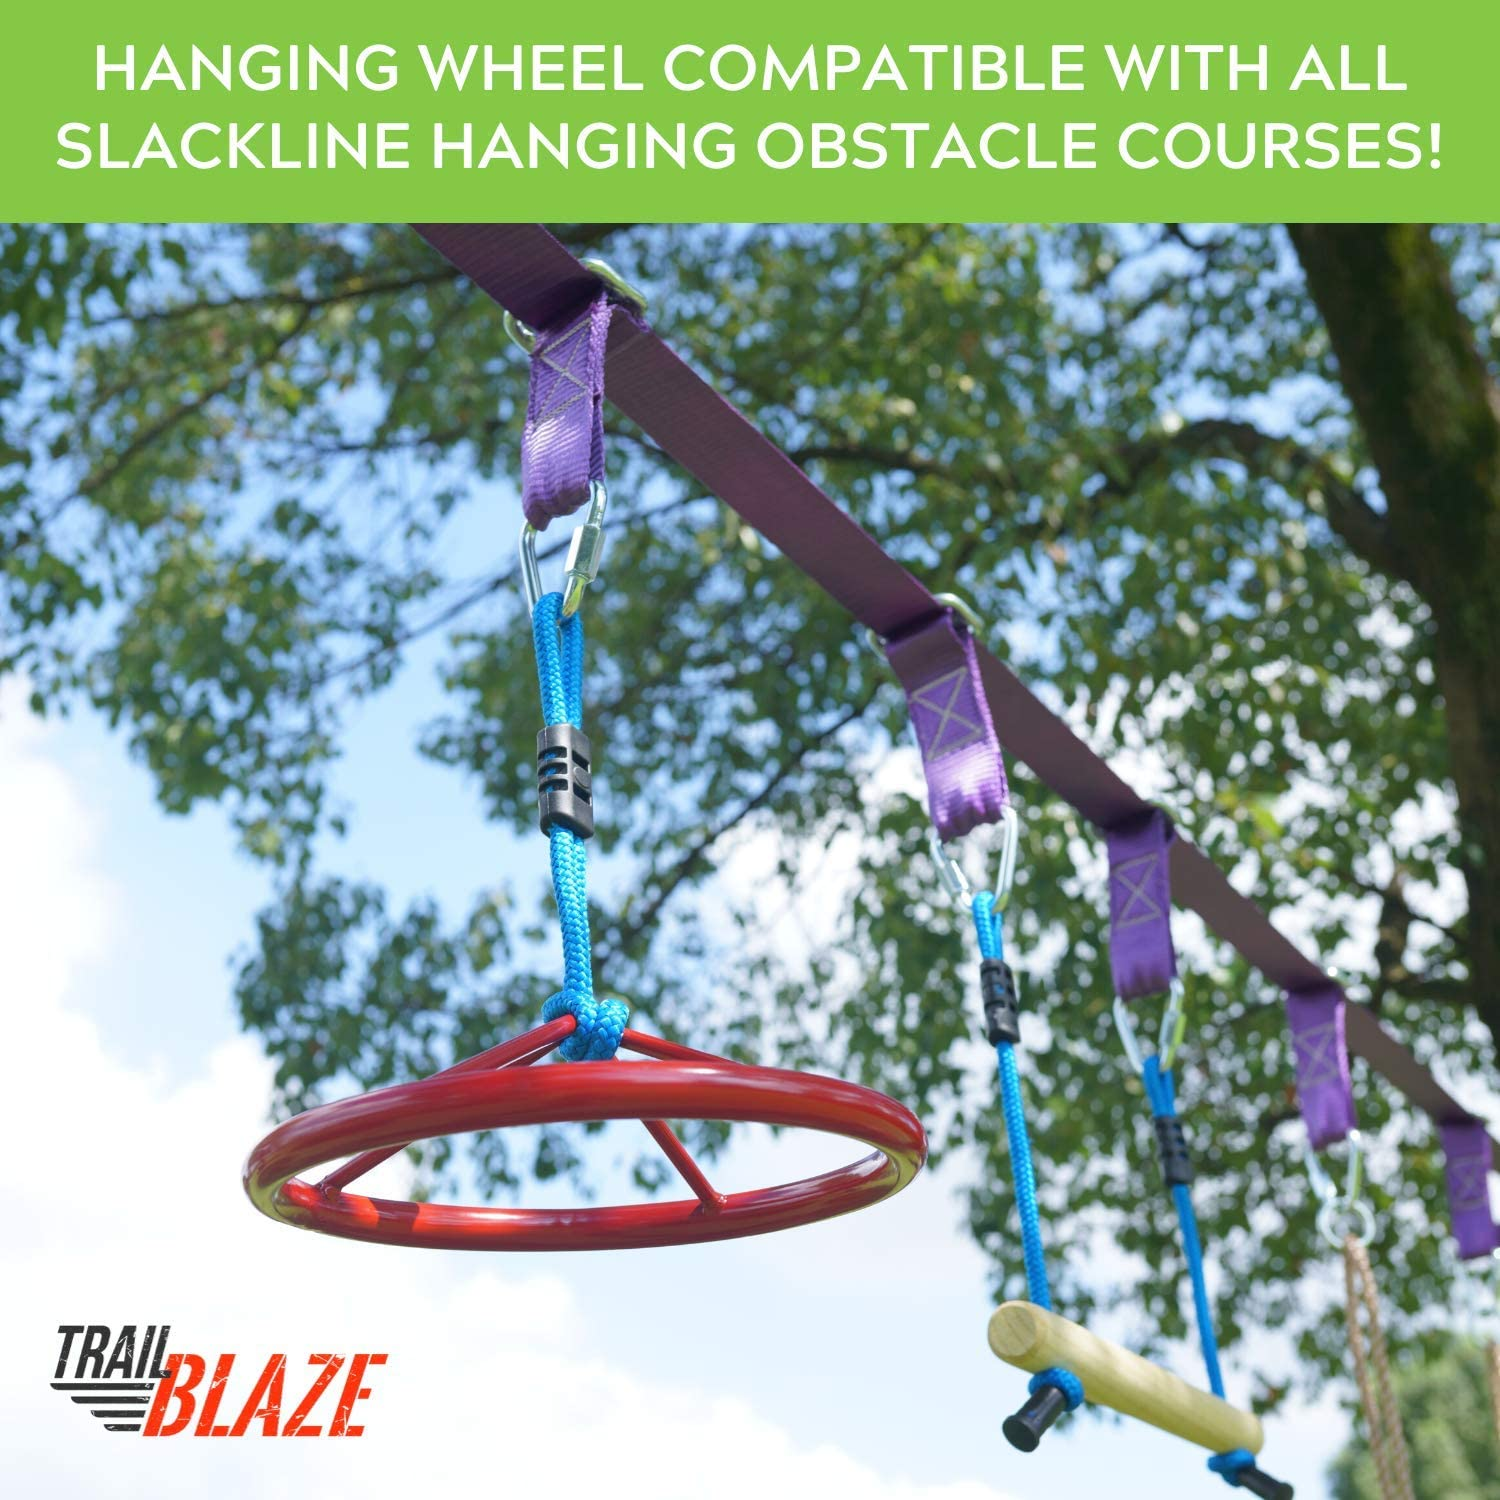 Perfect Addition to Your Outdoor Play Equipment Jungle Gym Monkey Wheel Easily Attaches to Ninjaline Trailblaze Premium Hanging Wheel for Ninja Warrior Slackline Hanging Obstacle Course for Kids